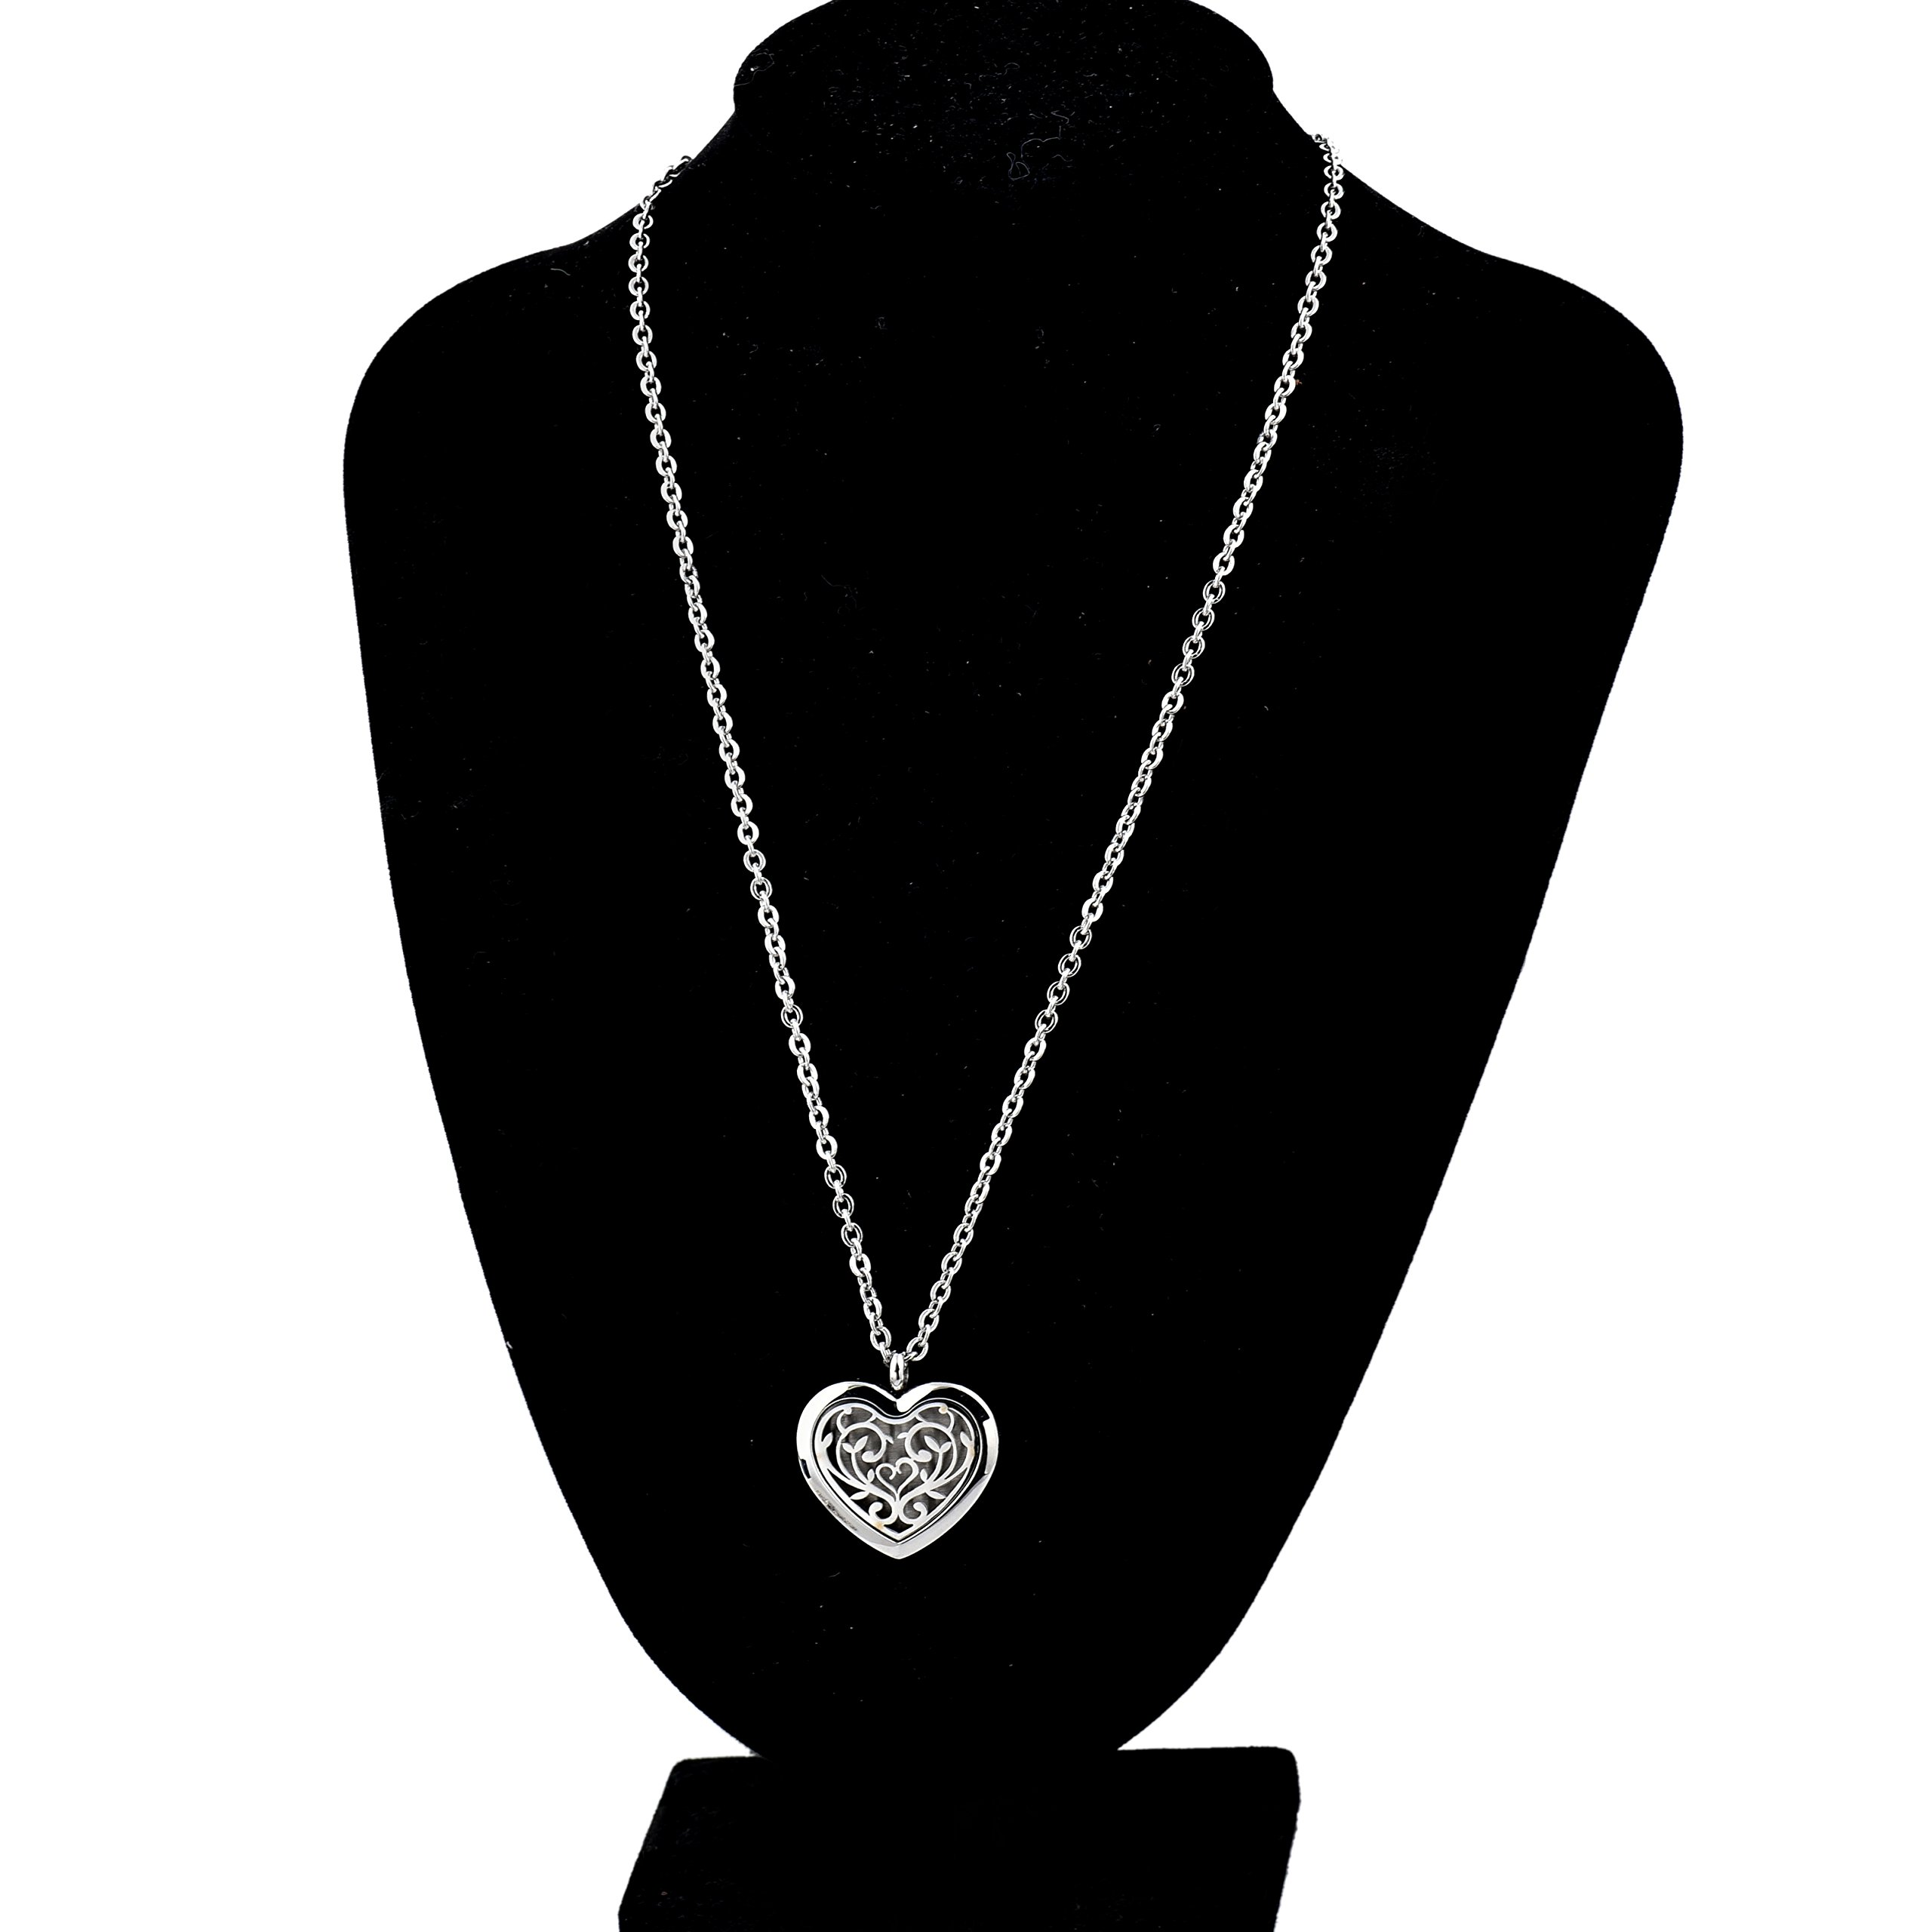 for necklace sale online kingdom brands women italy silver shop womens necklaces prices genuine ecg